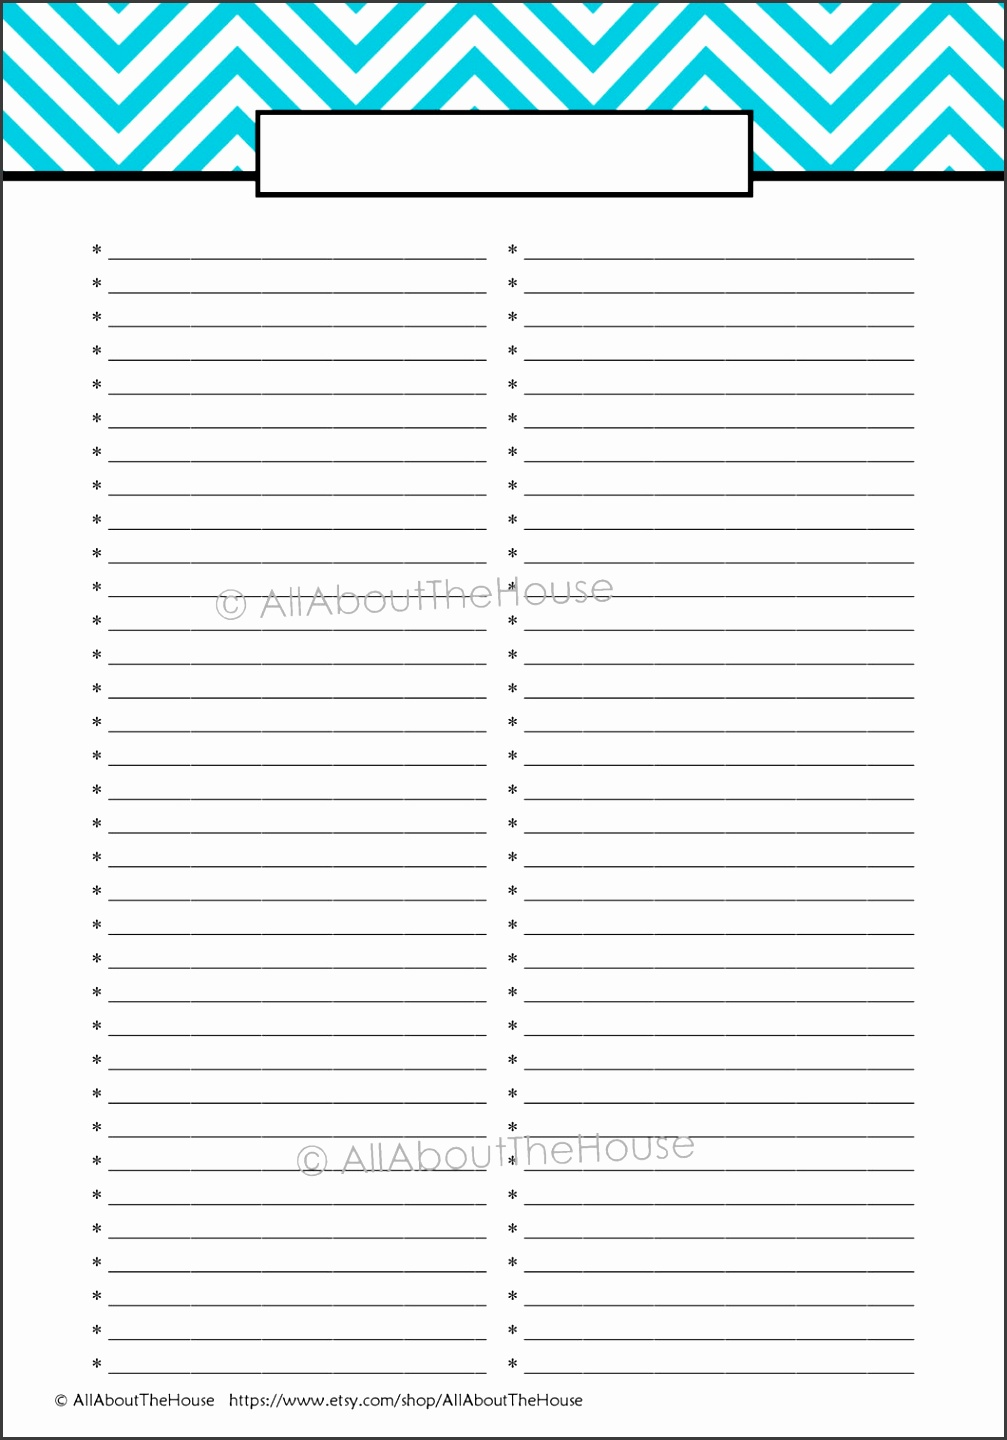 This is an image of Crush Blank List Printable